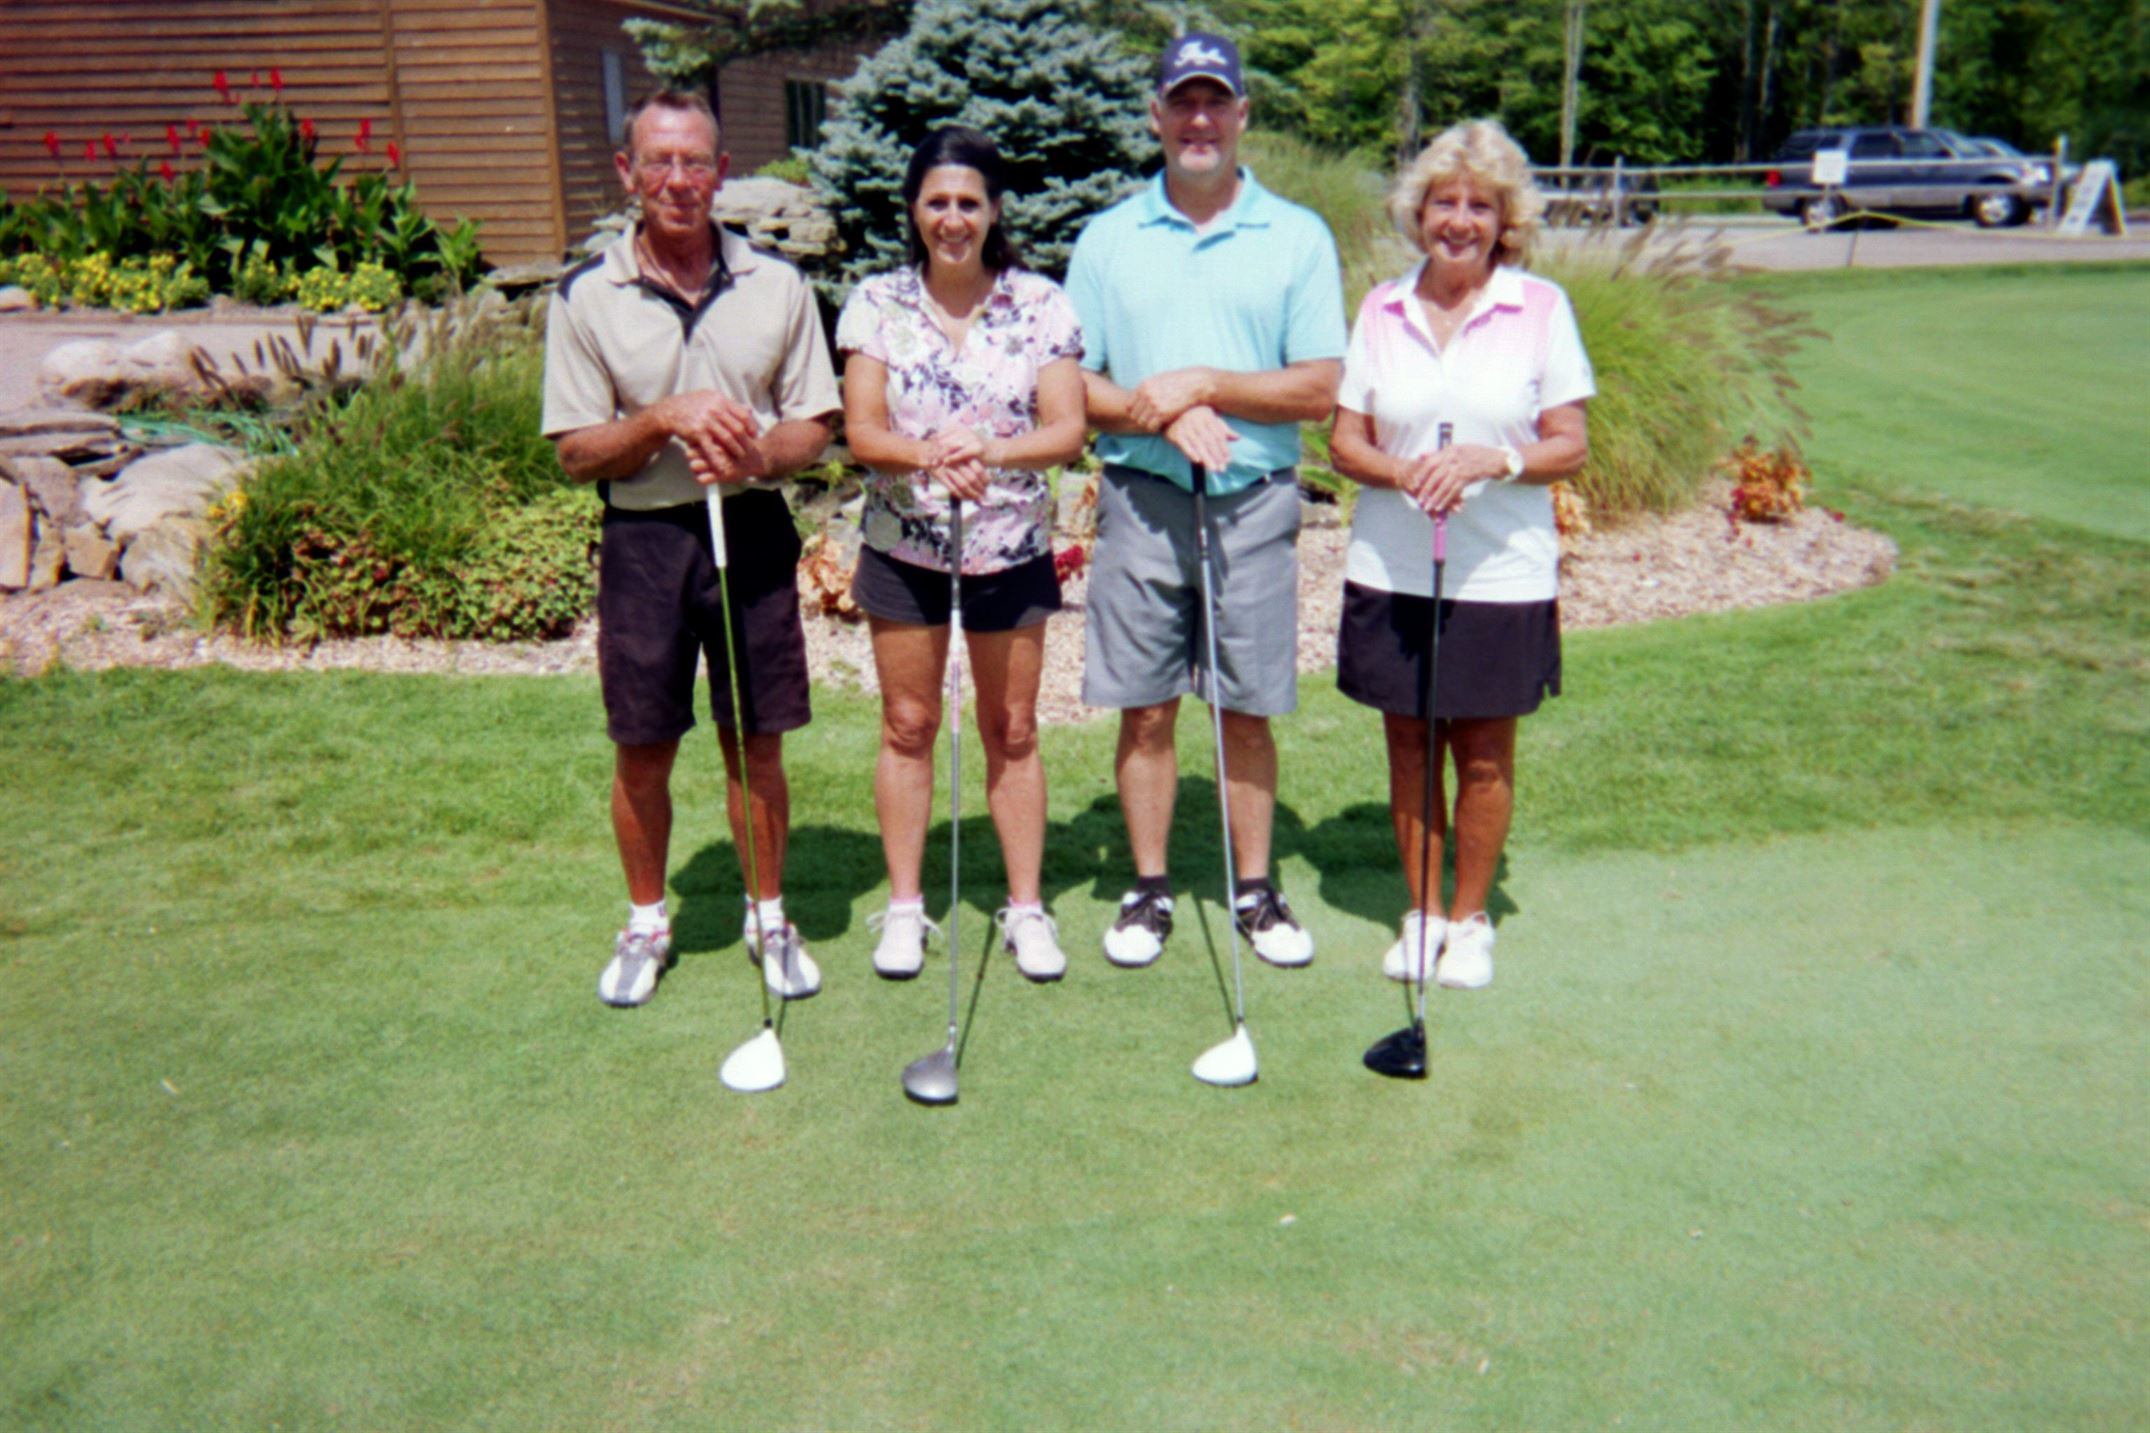 Steve Dragon, Becky Pierce, Dennis Dragon, Joyce Cerjan